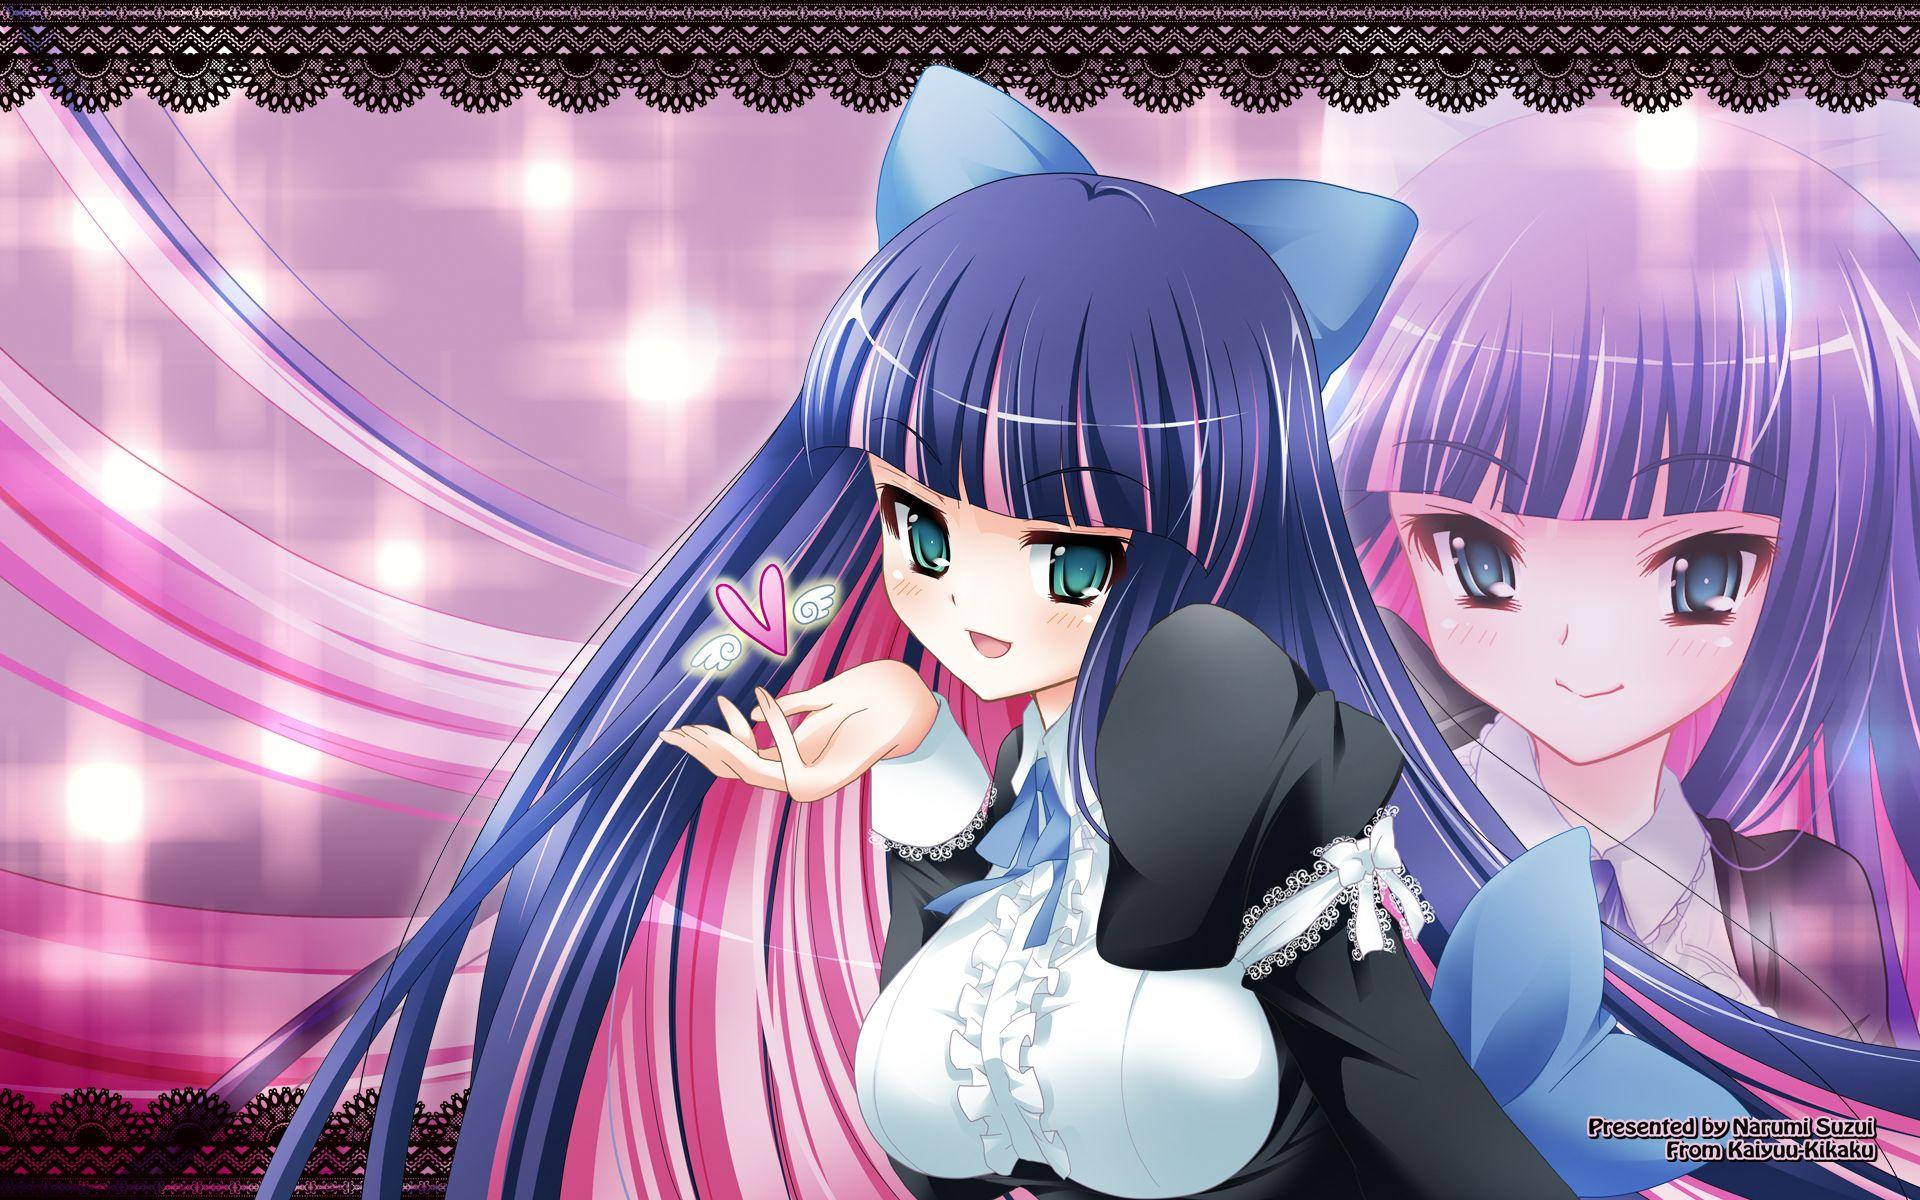 Cute Anime Girls Wallpapers - Wallpaper Cave